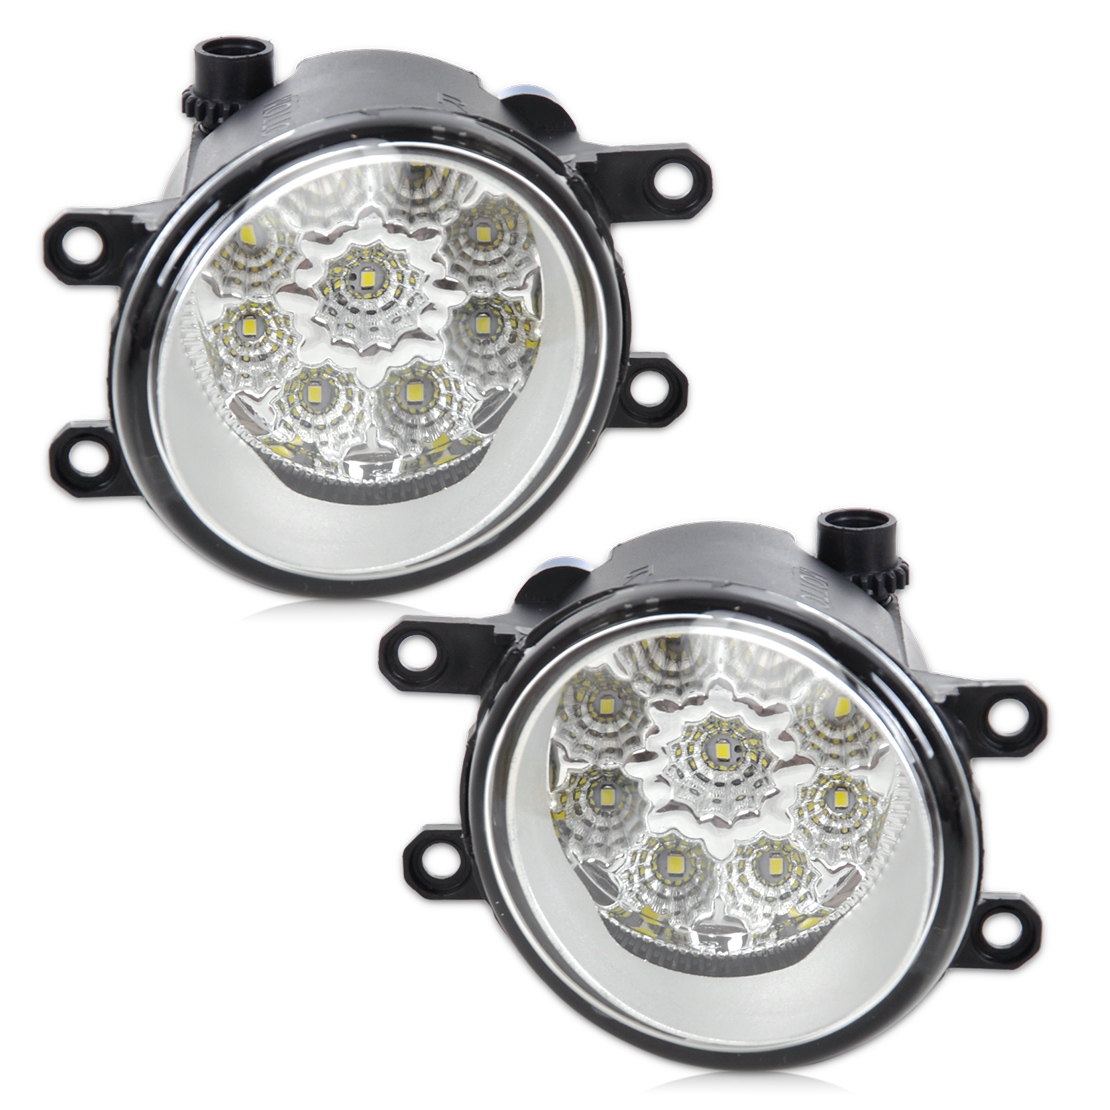 beler 2Pcs Right/Left Fog Light Lamp 55W 9-LED DRL Daytime Running Lights 81210-06050 for Toyota Camry Corolla RAV 4 Lexus dwcx 81210 06050 81210 0d040 2pcs front fog light lamp 2pcs grille cover bezel for toyota corolla 2007 2008 2009 2010